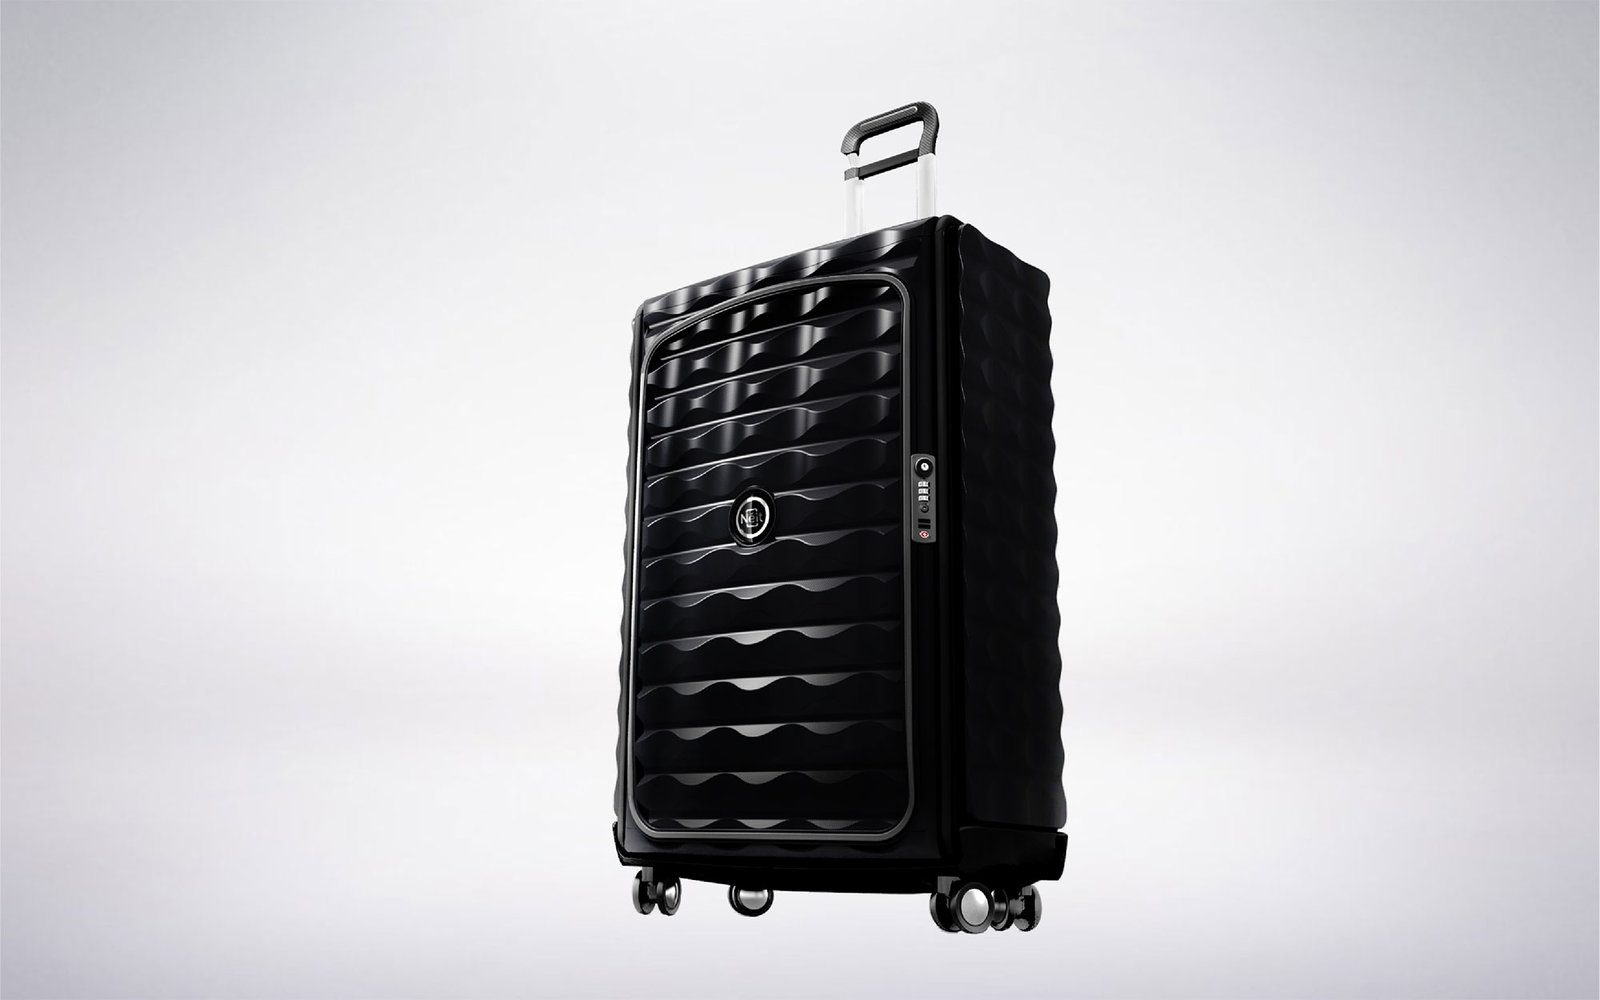 Neit collapsible suitcase